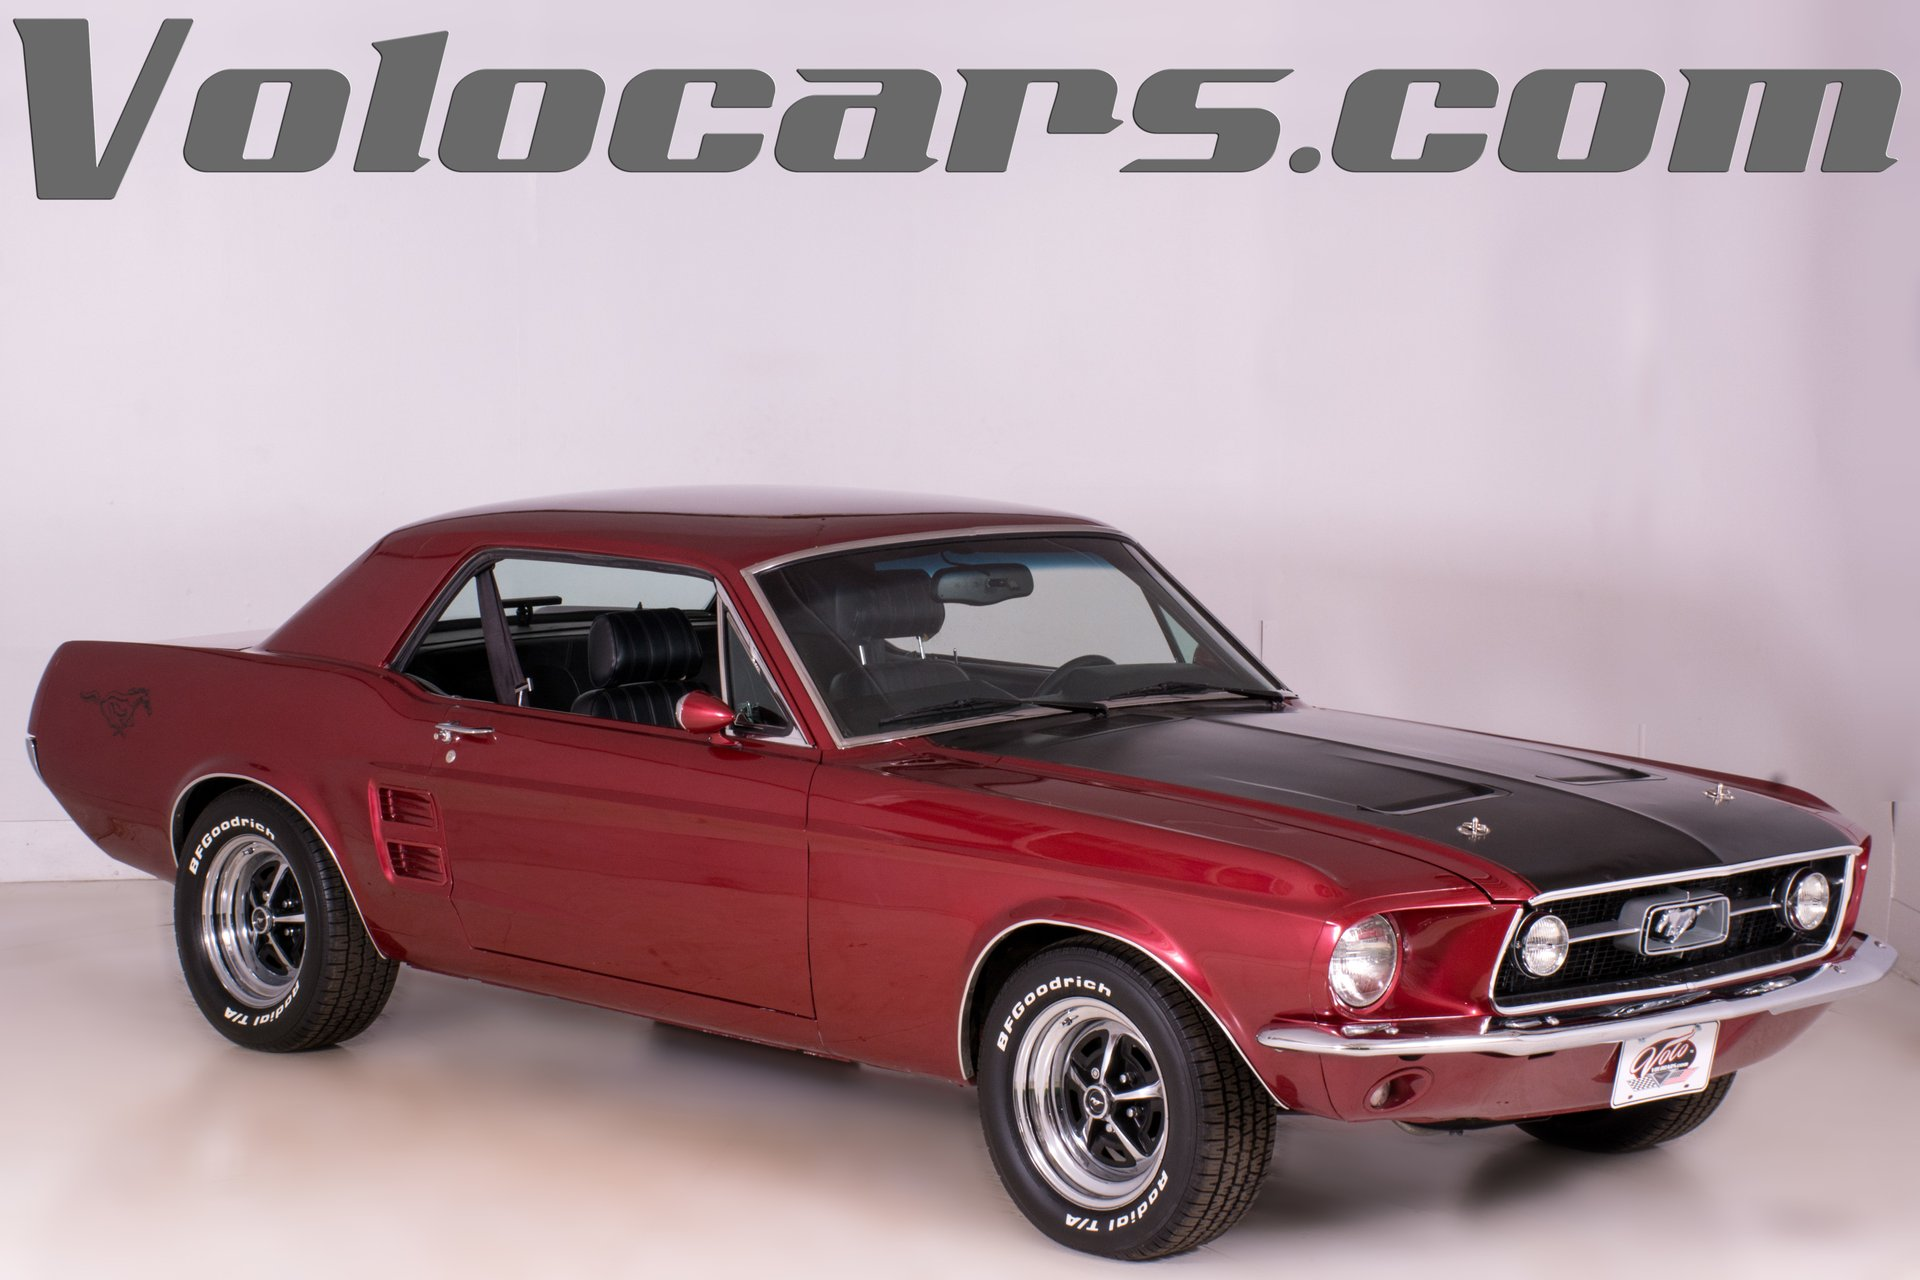 hight resolution of 1968 ford mustang wiring system upgrades mustang monthly magazine new wiring harness for your ford mustang mustang monthly magazine